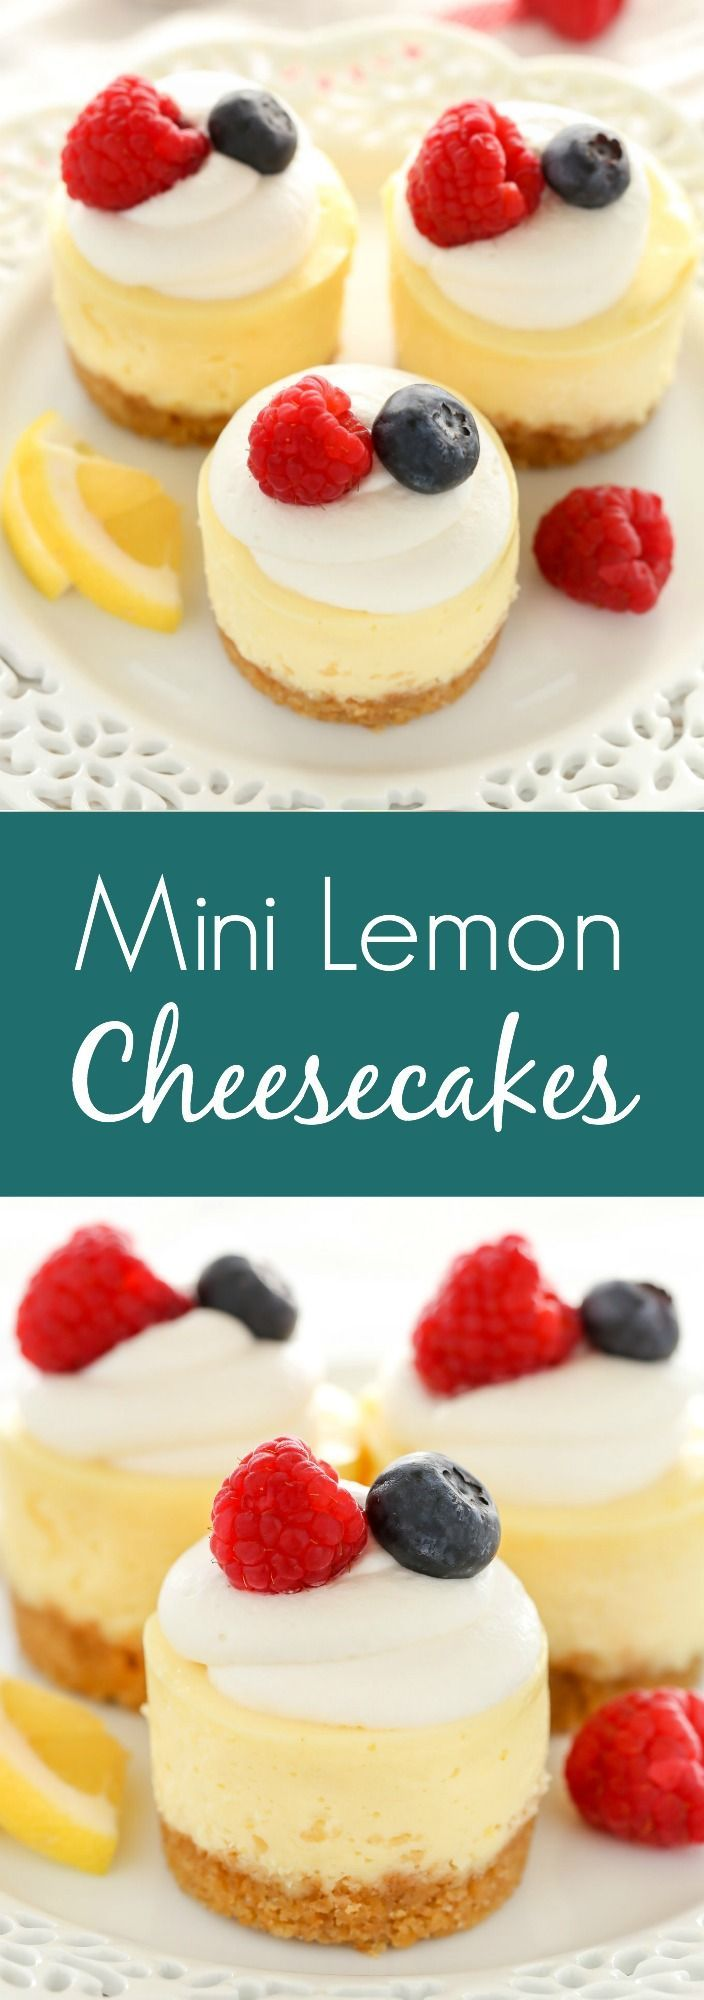 These Mini Lemon Cheesecakes feature an easy homemade graham cracker crust topped with a smooth and creamy lemon cheesecake filling. Top them with some fresh whipped cream and berries for an easy dessert everyone will love! -   23 lemon cheesecake recipes ideas